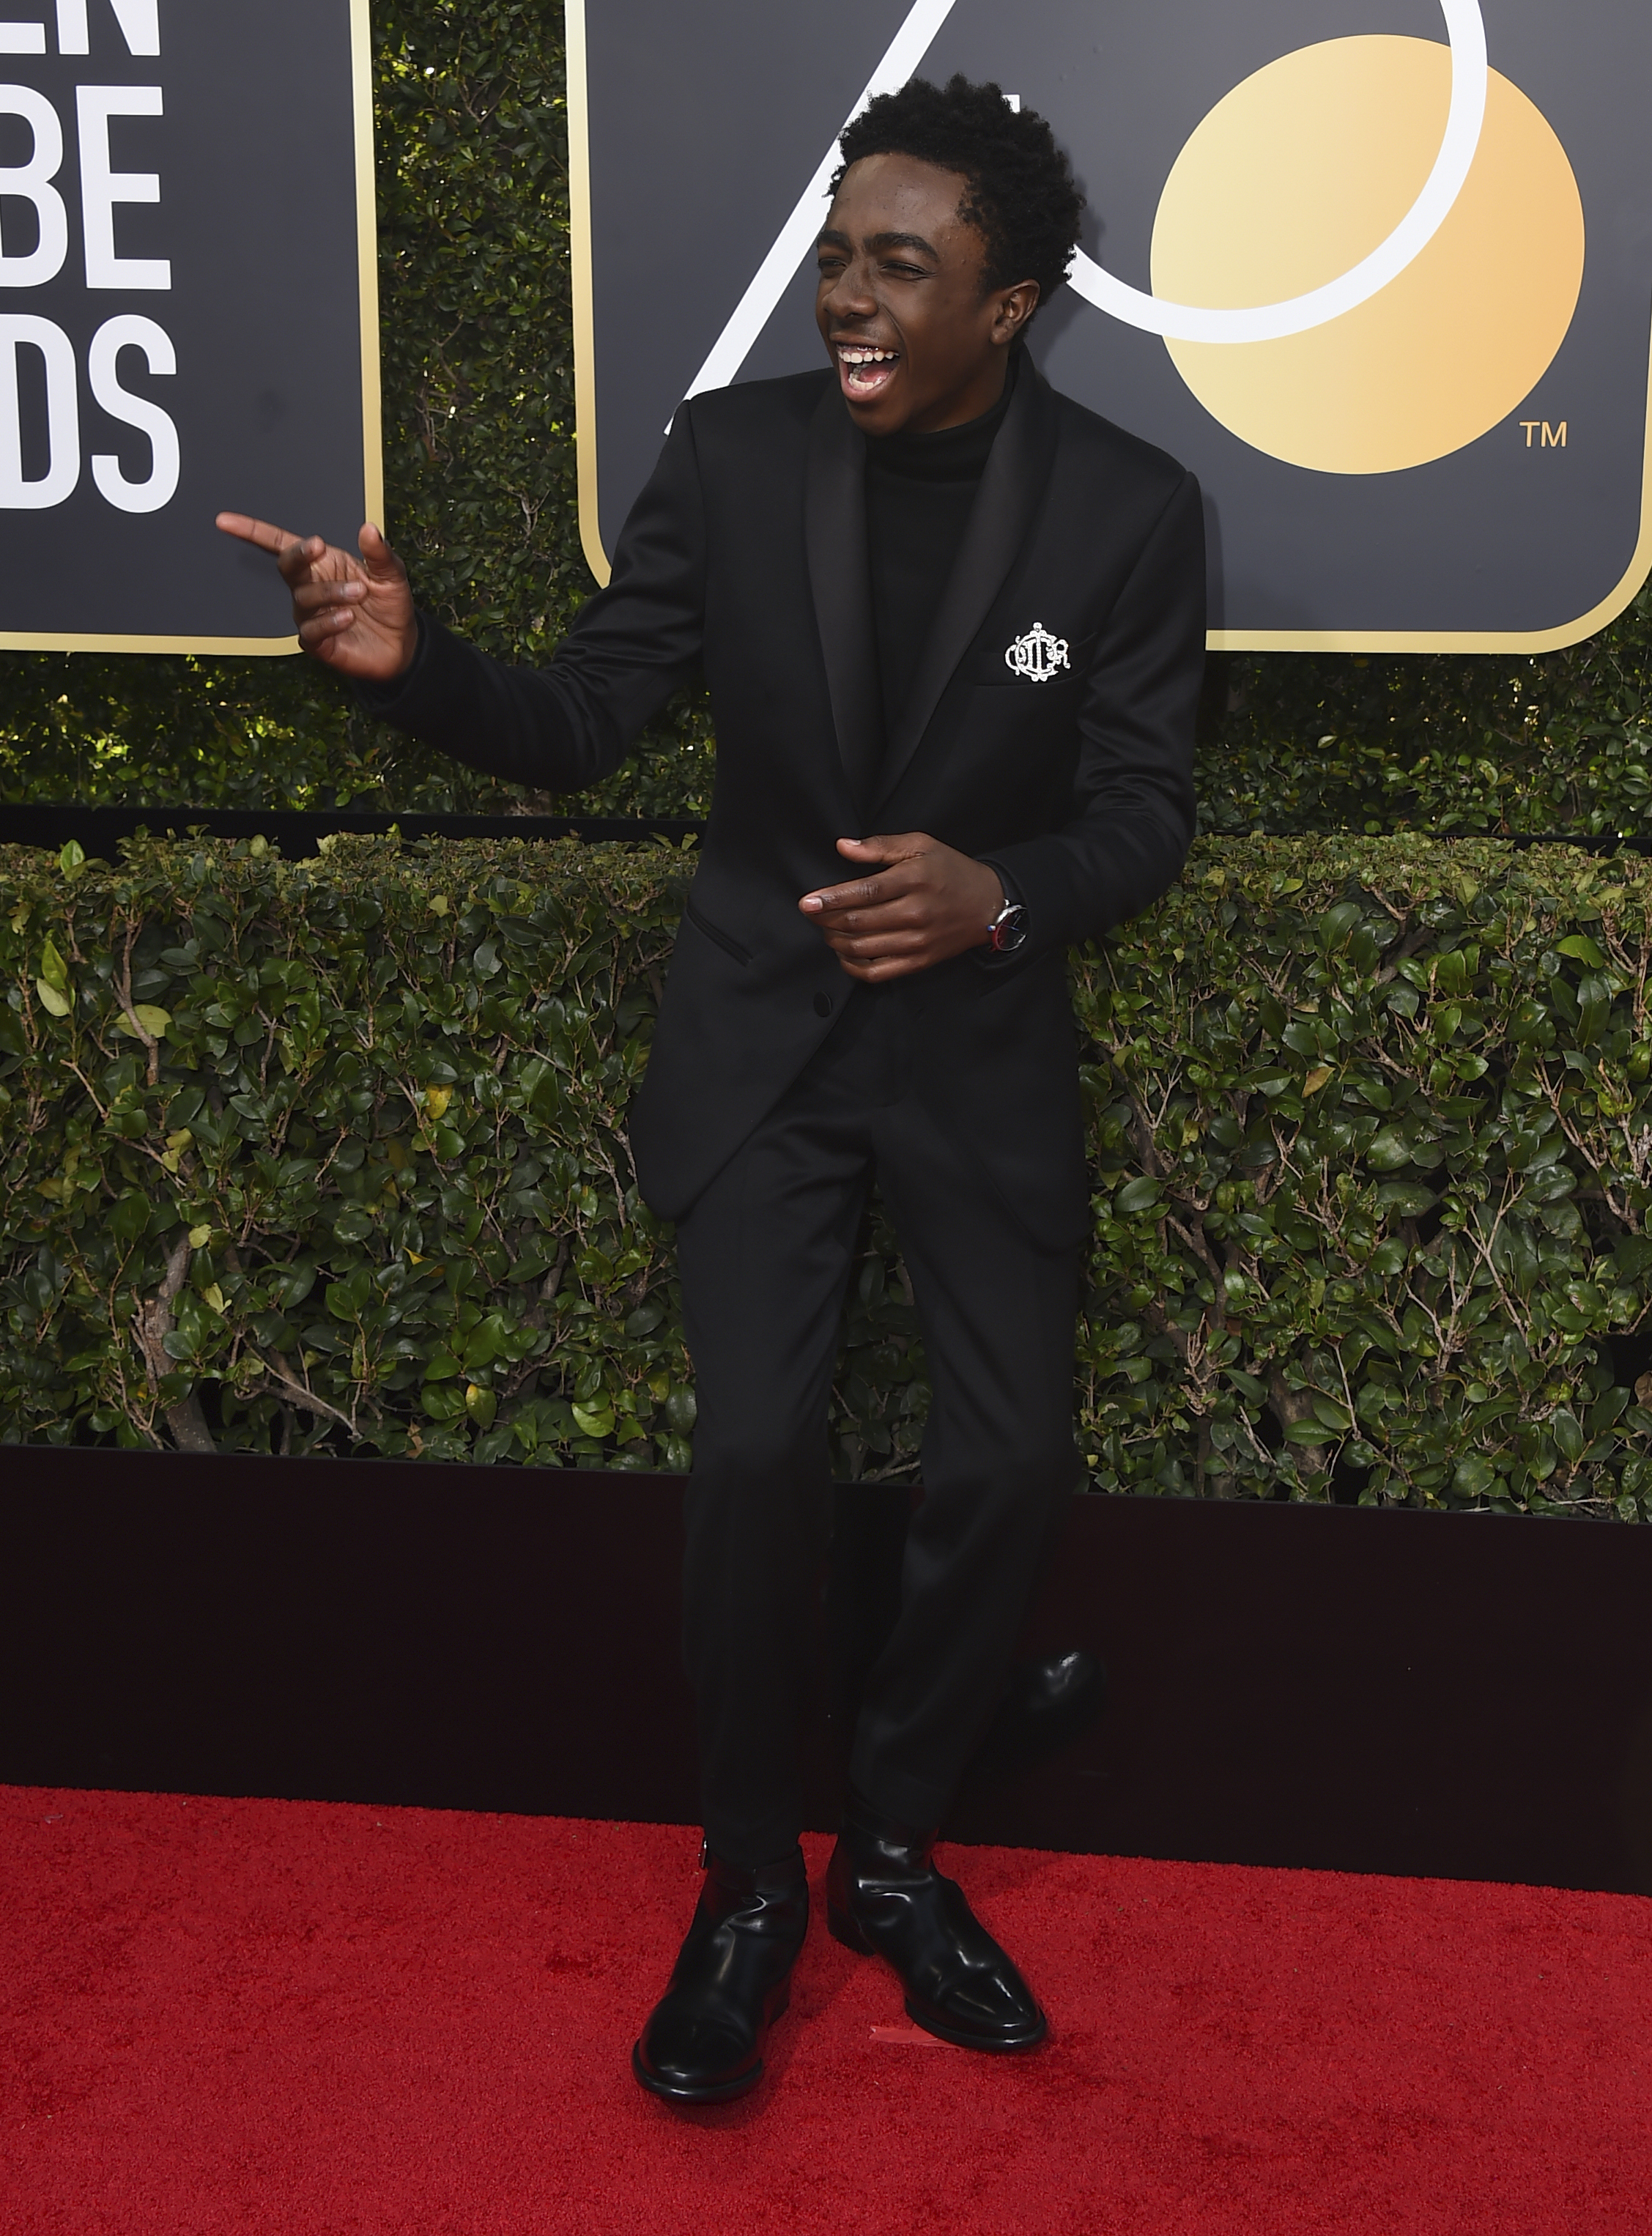 <div class='meta'><div class='origin-logo' data-origin='AP'></div><span class='caption-text' data-credit='Jordan Strauss/Invision/AP'>Caleb McLaughlin arrives at the 75th annual Golden Globe Awards at the Beverly Hilton Hotel on Sunday, Jan. 7, 2018, in Beverly Hills, Calif.</span></div>